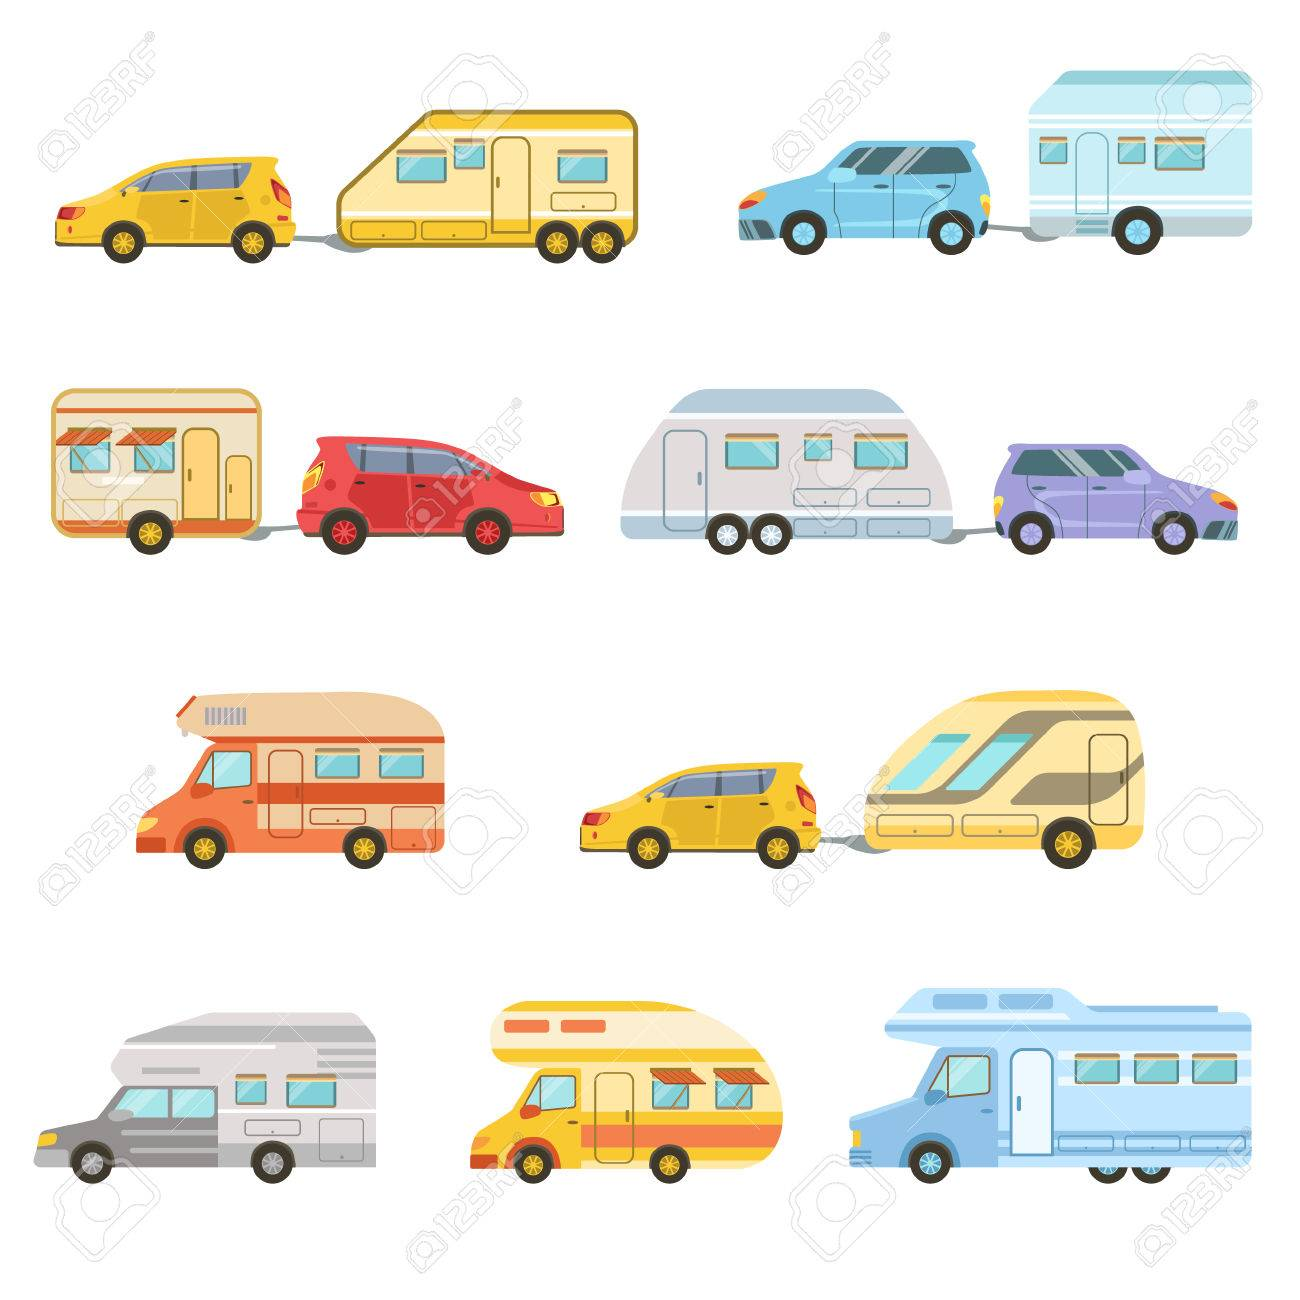 Colorful Rv Minivan With Trailer Set Of Icons Family Motorhome Flat Car